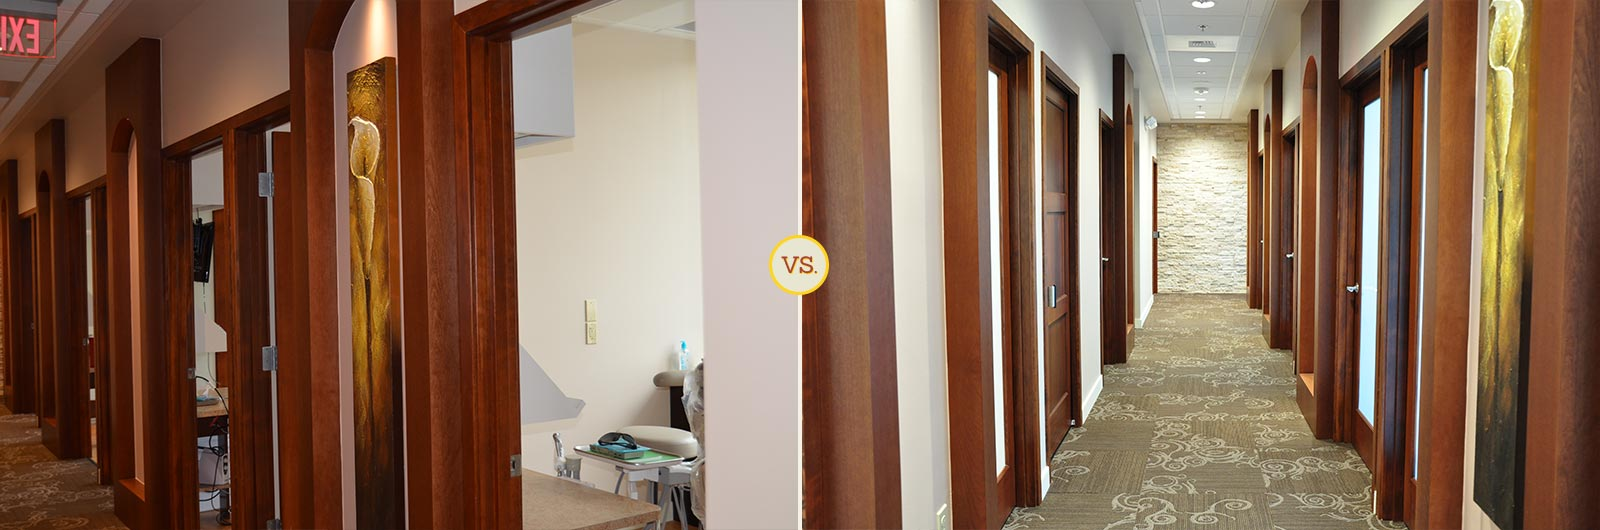 Side-by-side comparison of dental practice hallway photos